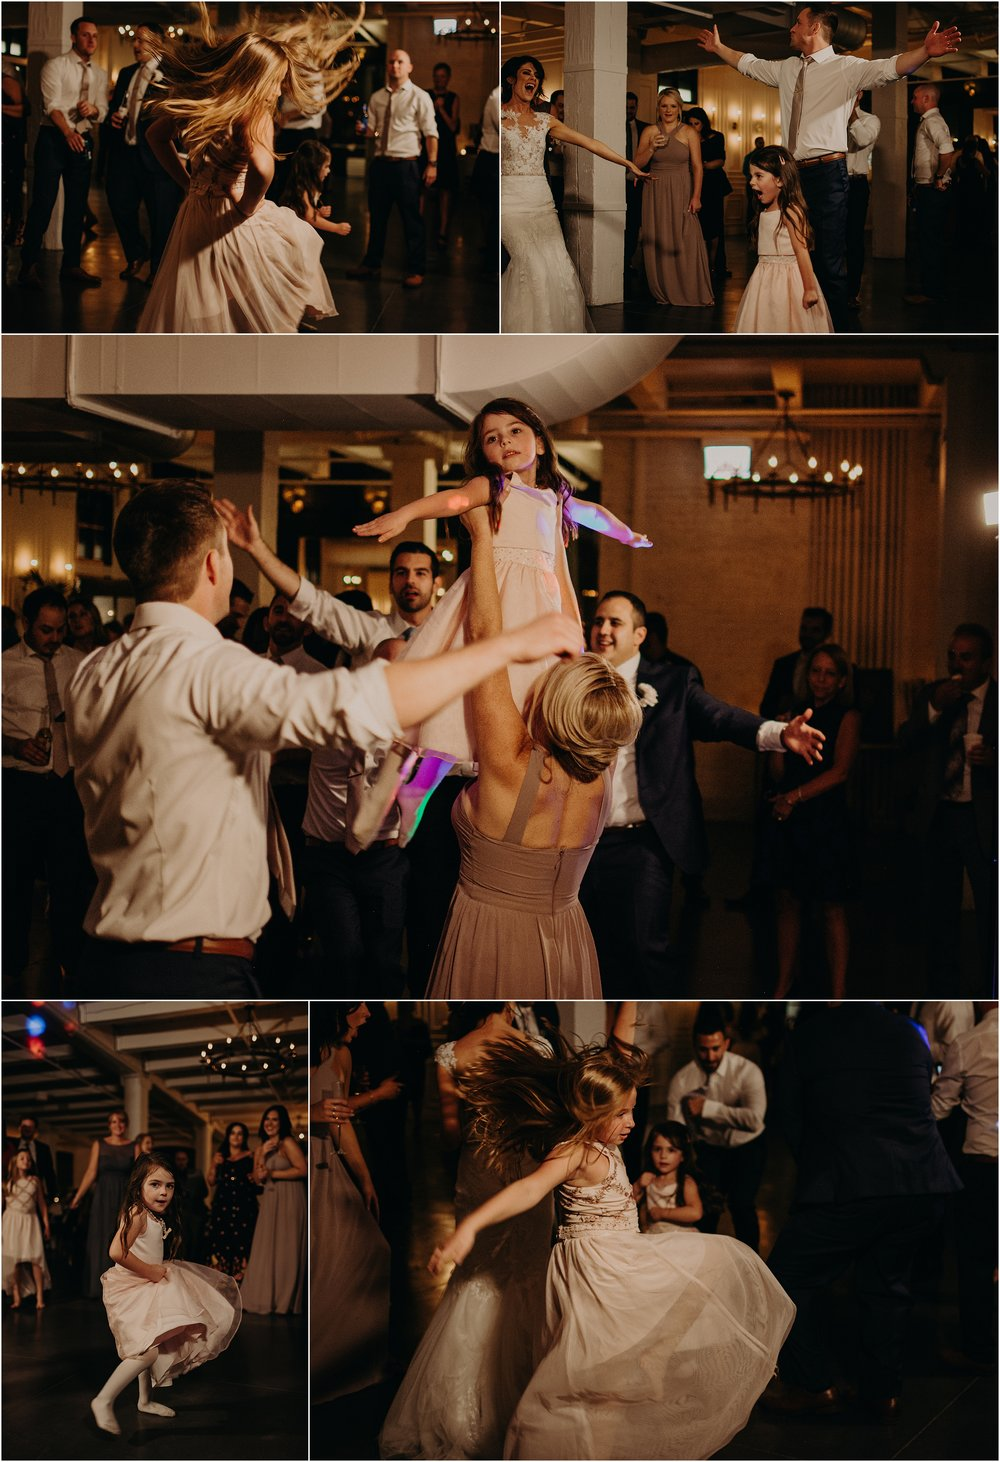 The Greatest Showman is Evie's favorite album, played during the reception